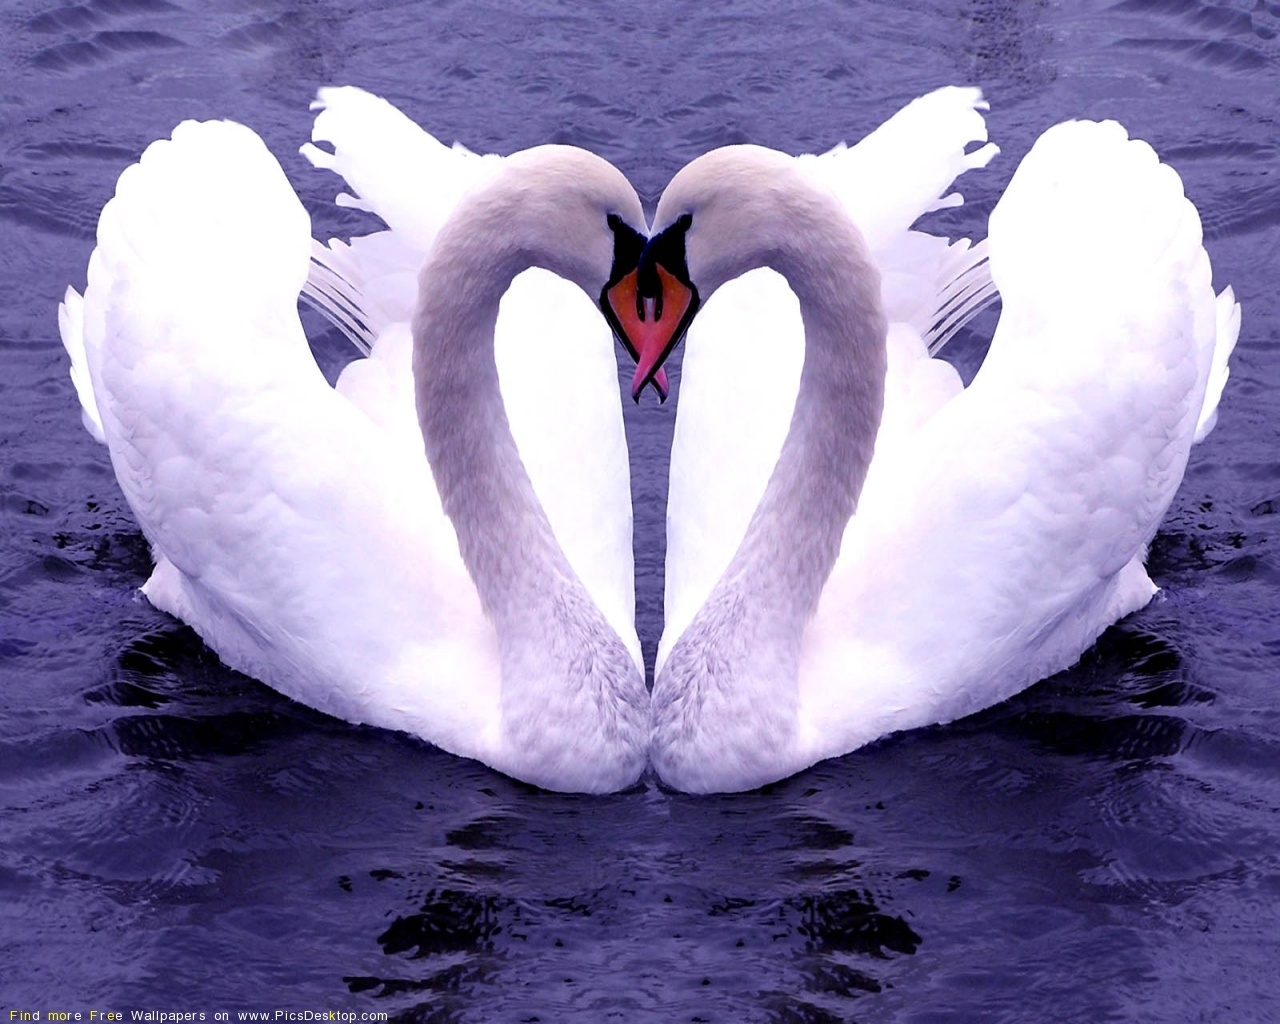 617 download wallpaper Animals, Birds, Hearts, Swans, Love, Valentine's Day screensavers and pictures for free